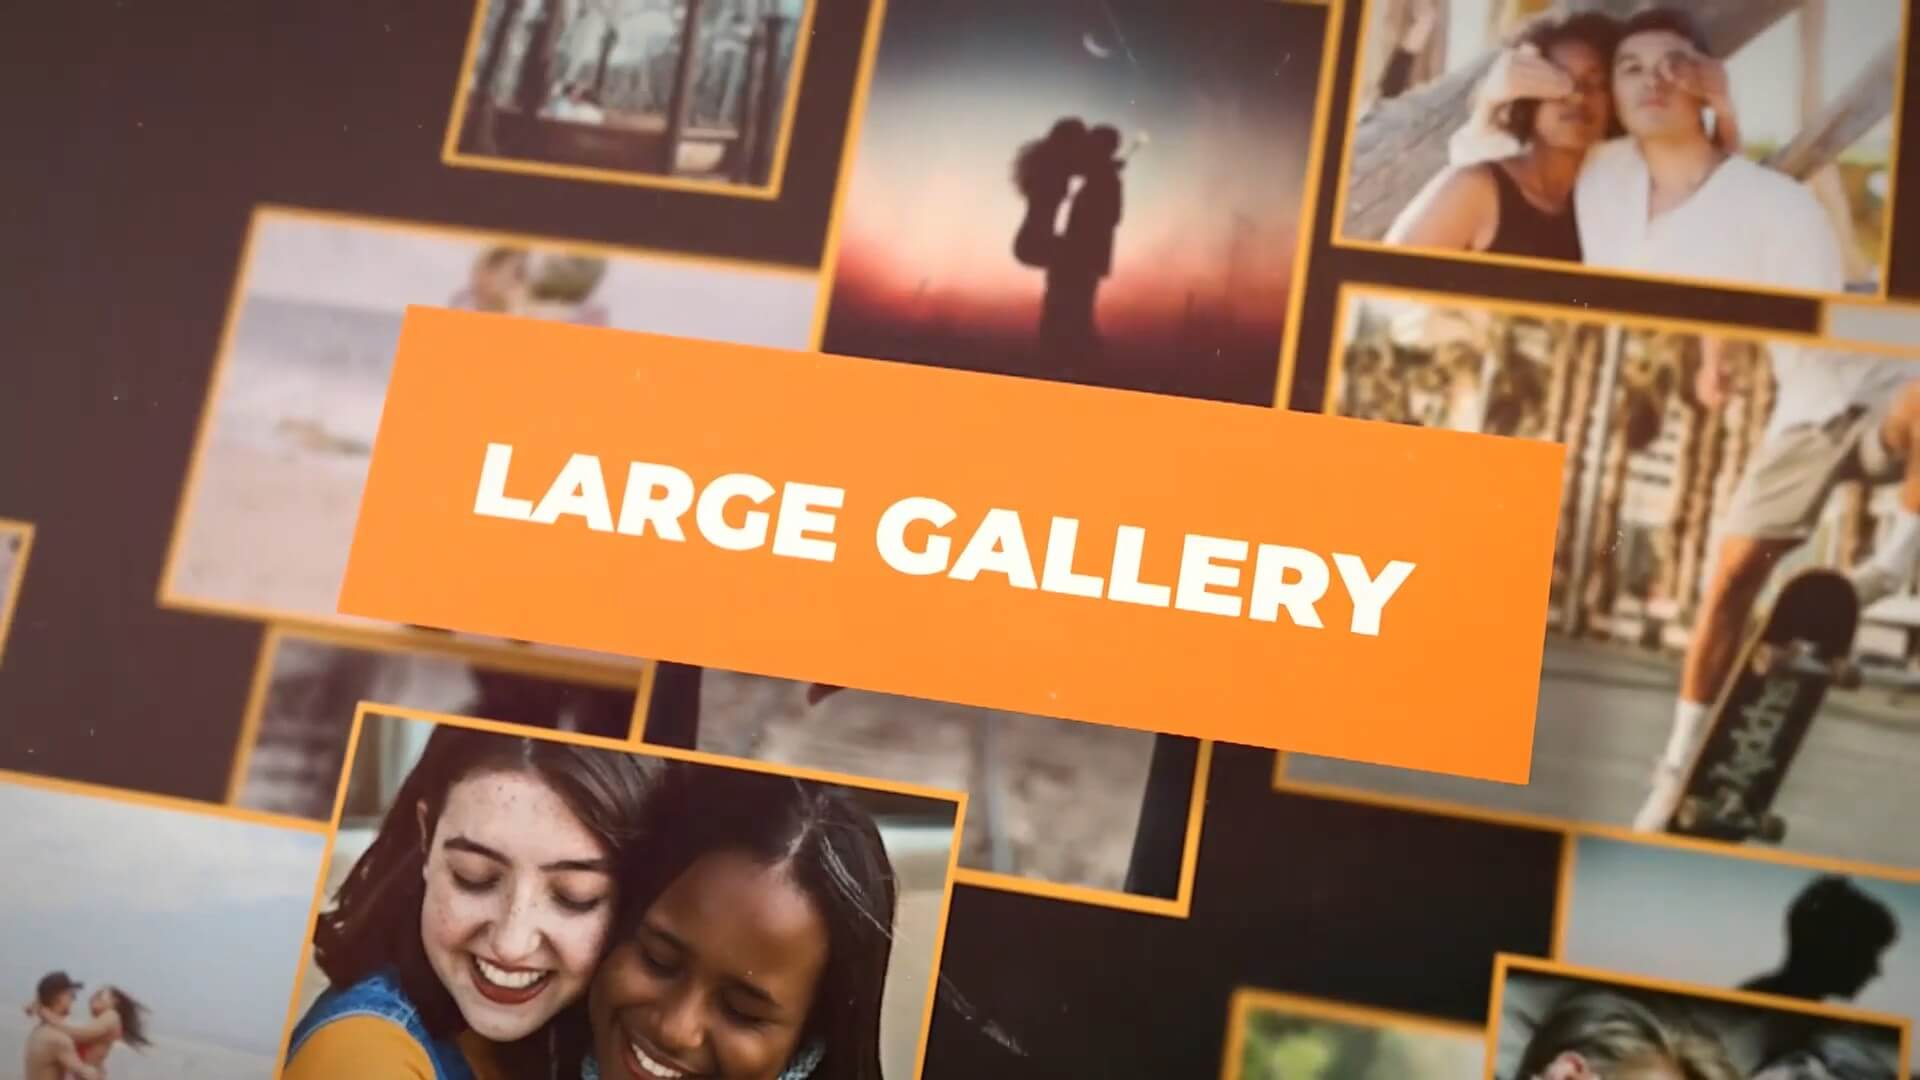 Fcpx多图展示模板 复古相机抖动风格相册作品集展示 Fast Large Gallery